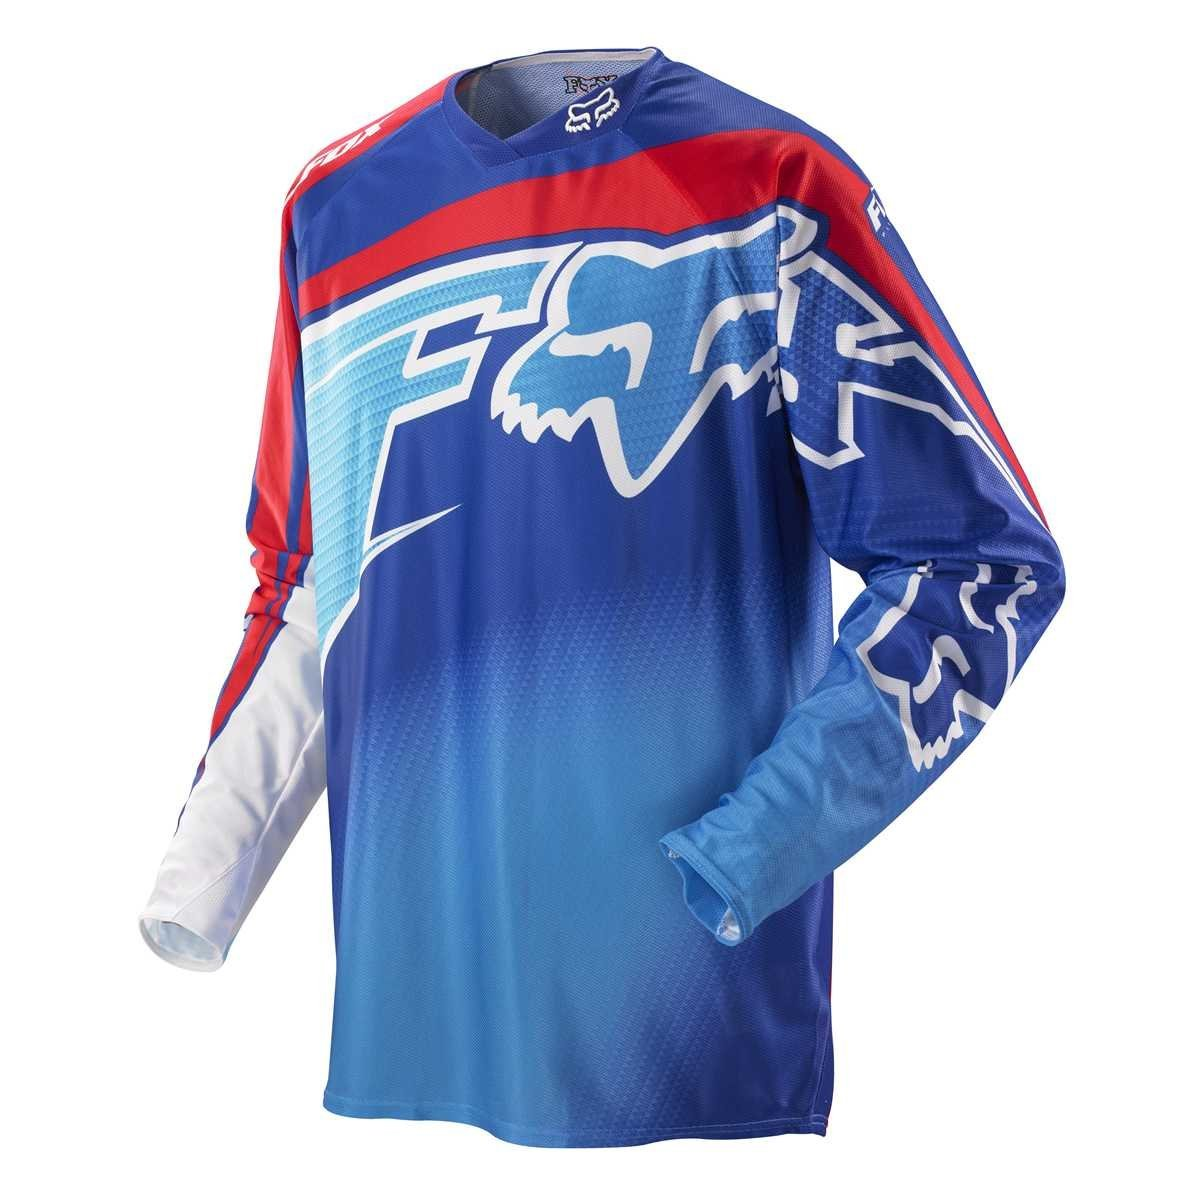 Fox Racing 360 Flight Men's Dirt Bike Motorcycle Jerseys - Blue/Red / X-Large